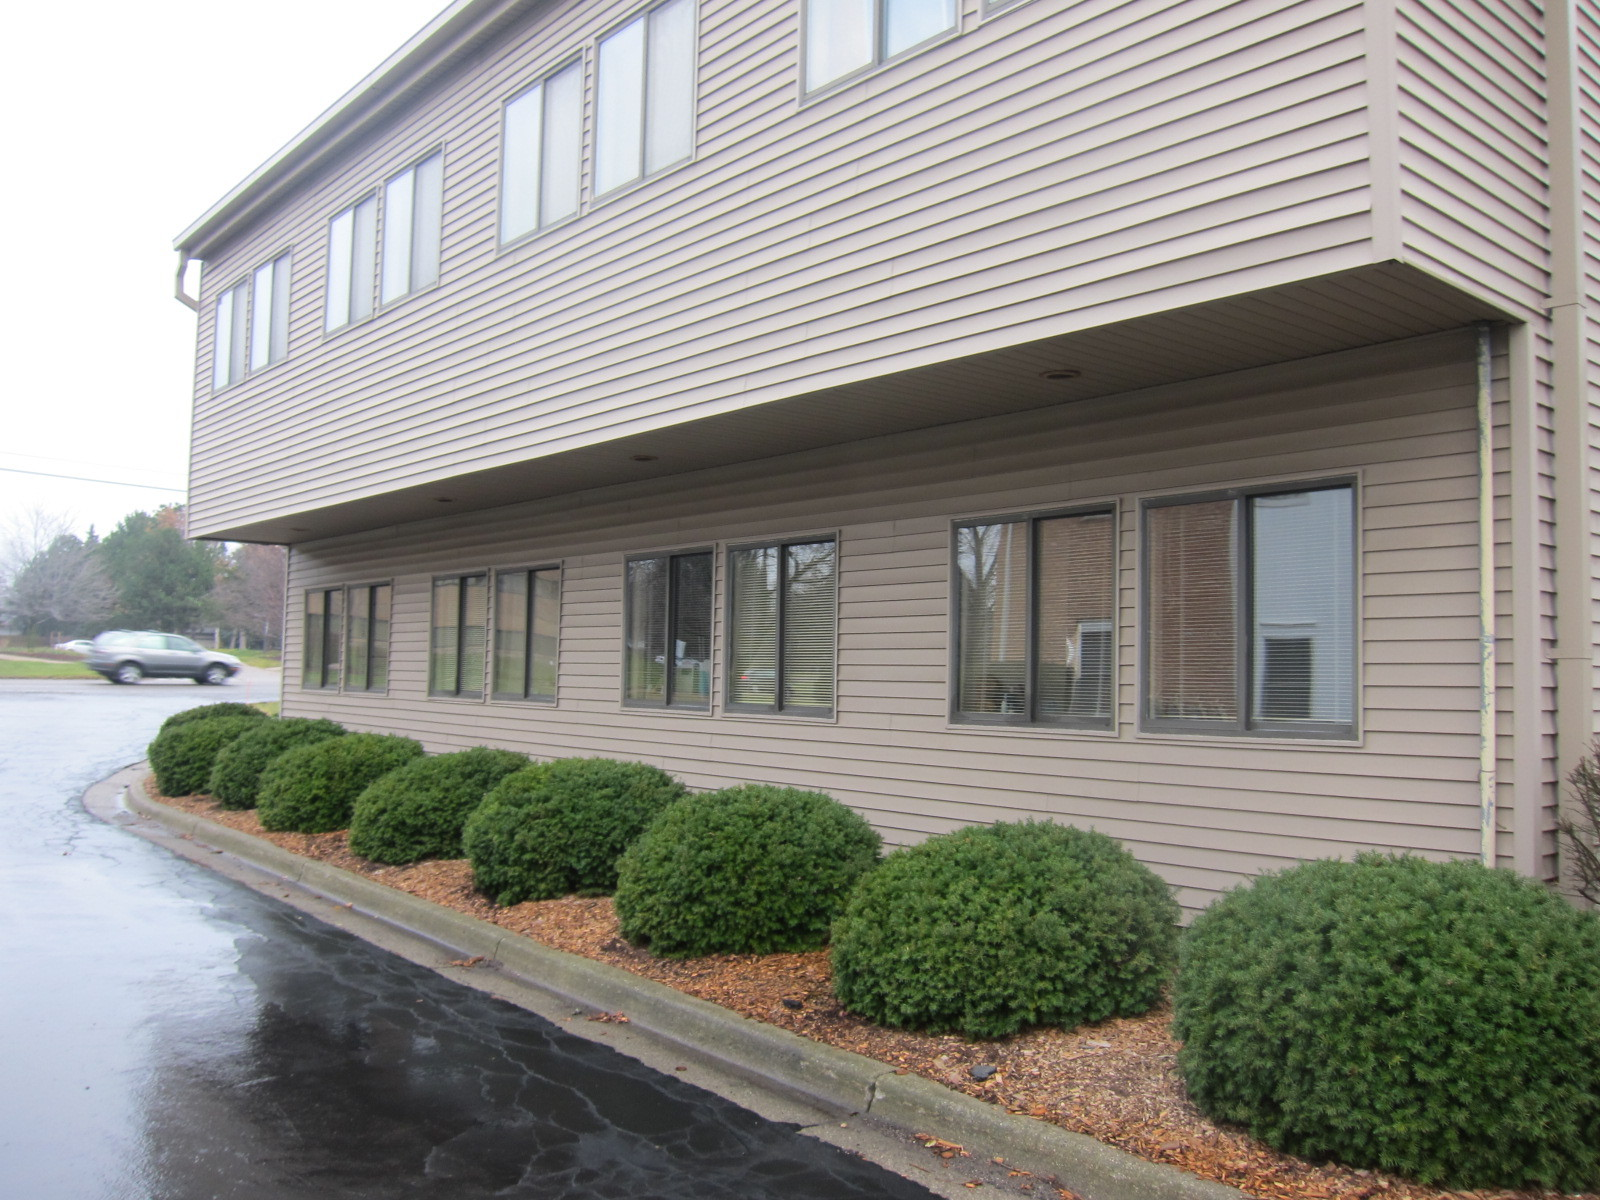 Ample Parking is Available behind the building